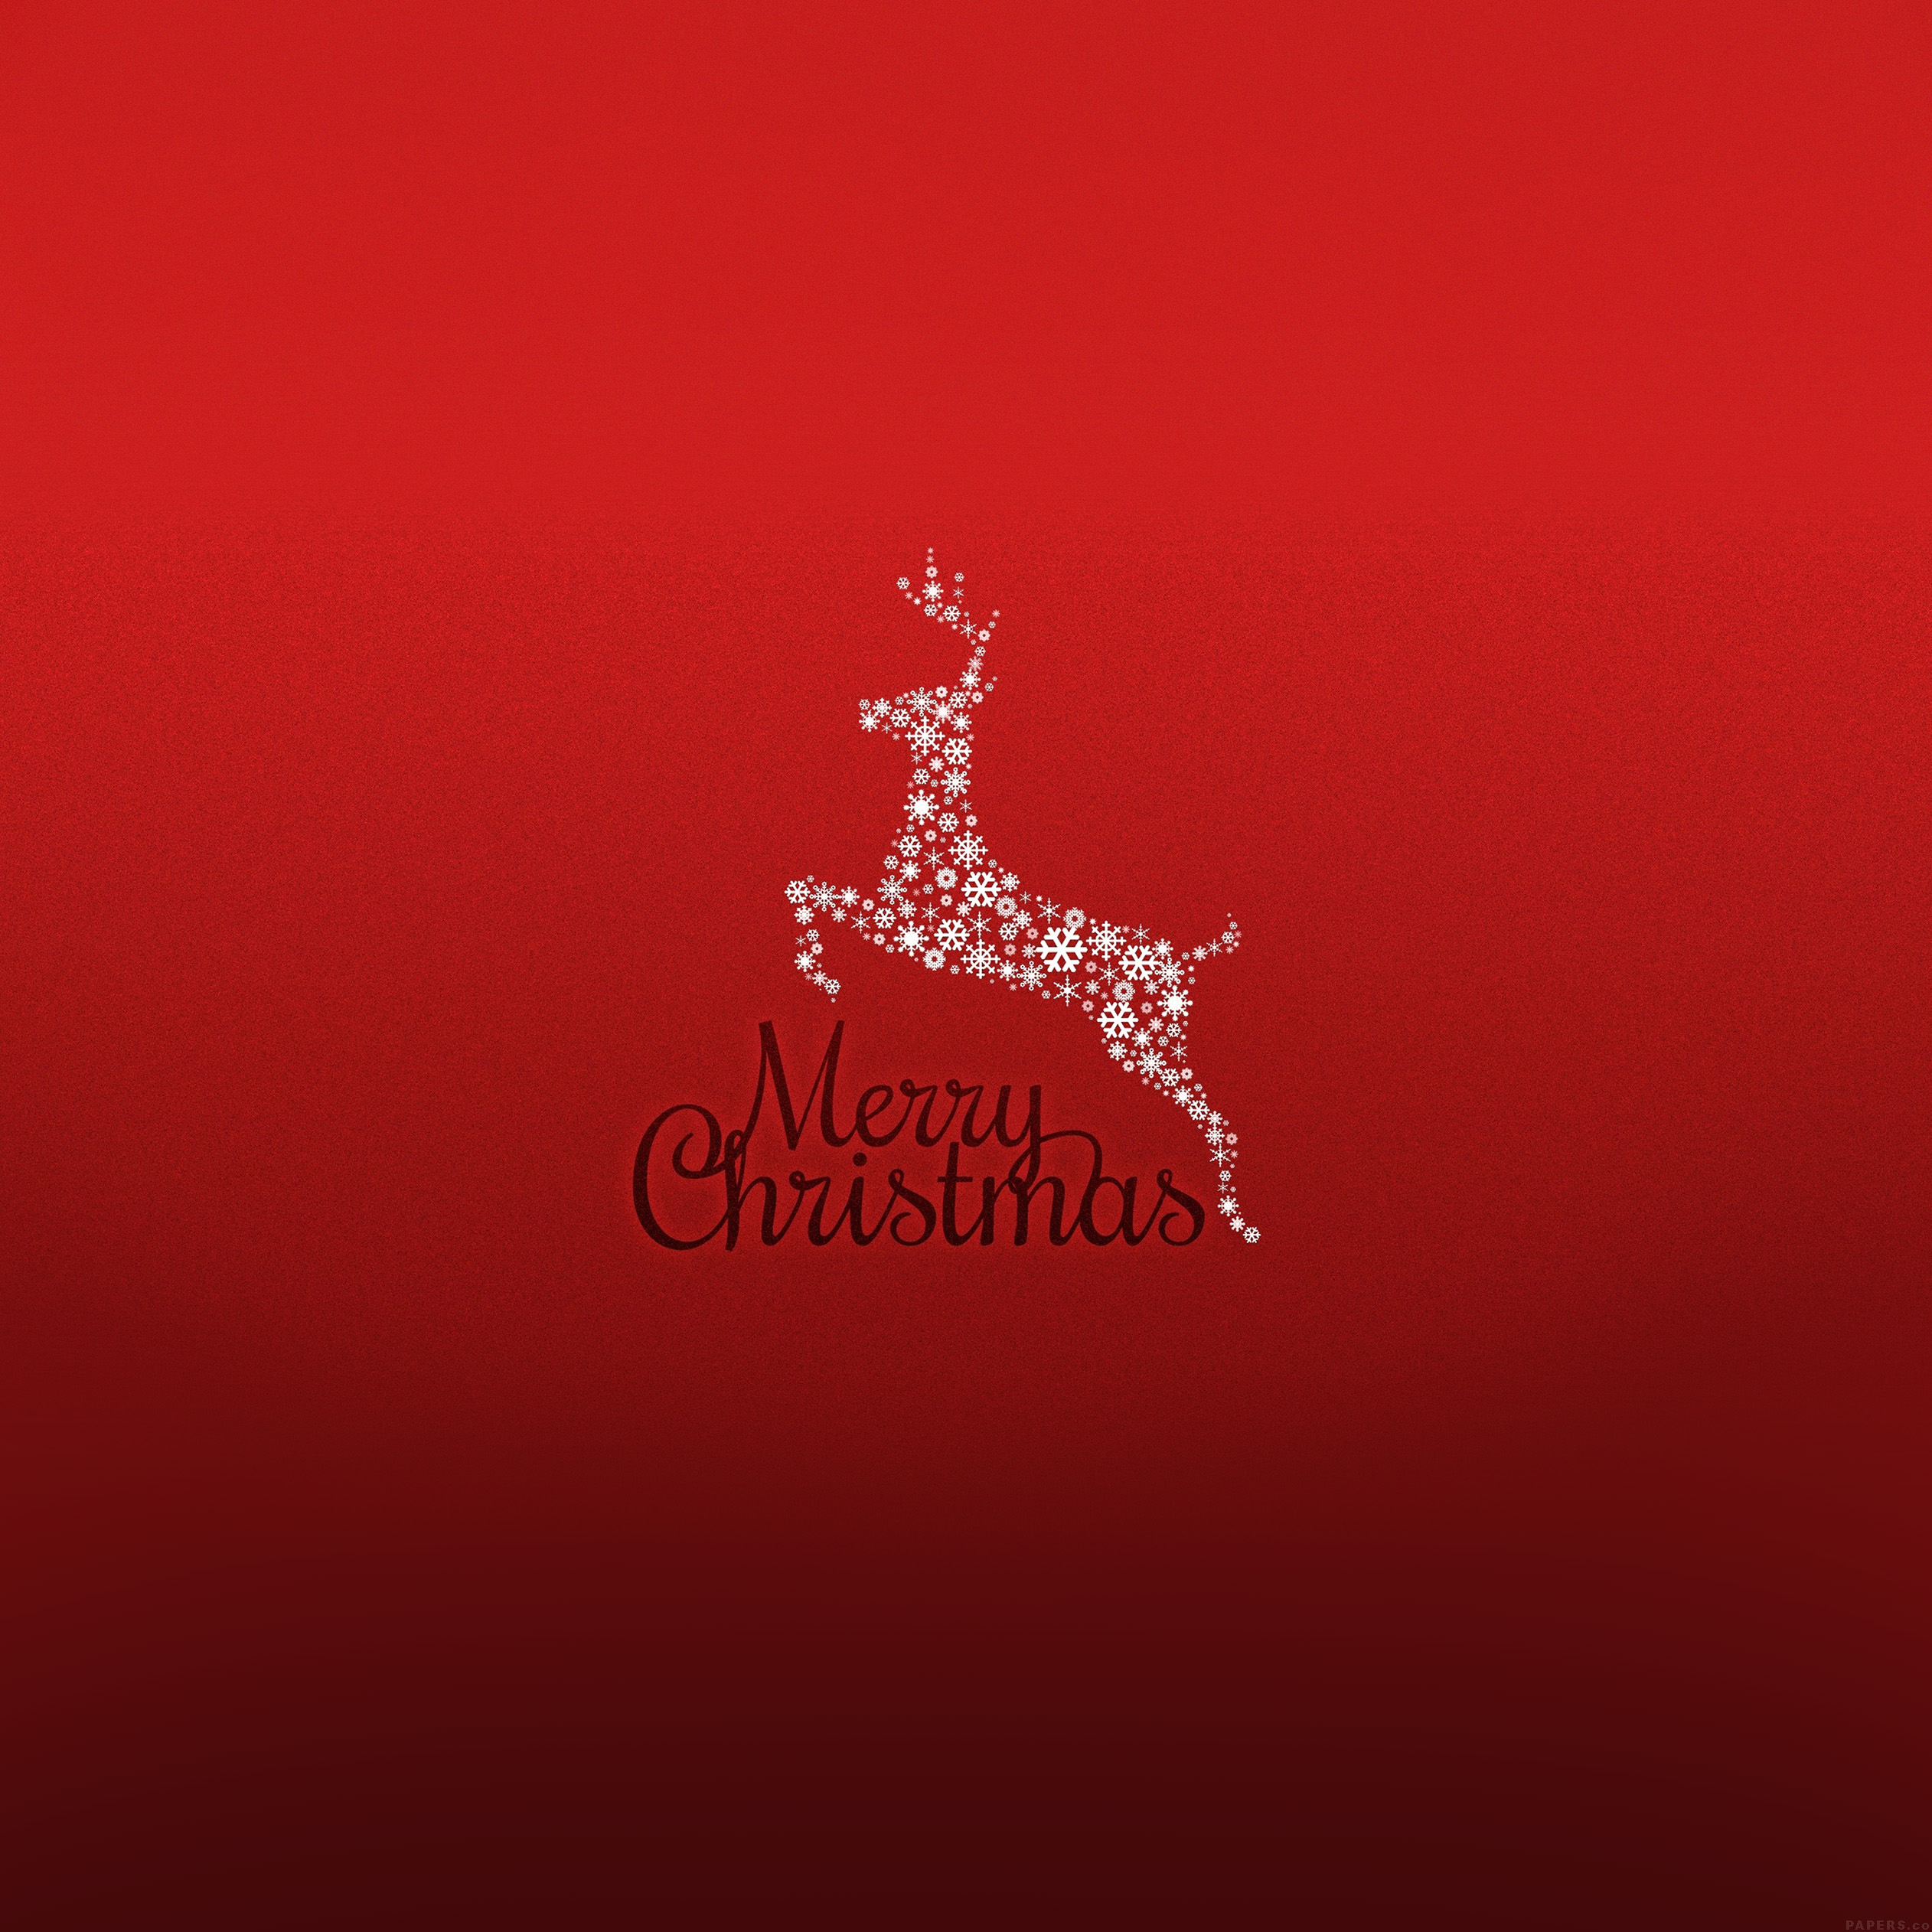 merry-christmas-rudolf-art-9-wallpaper